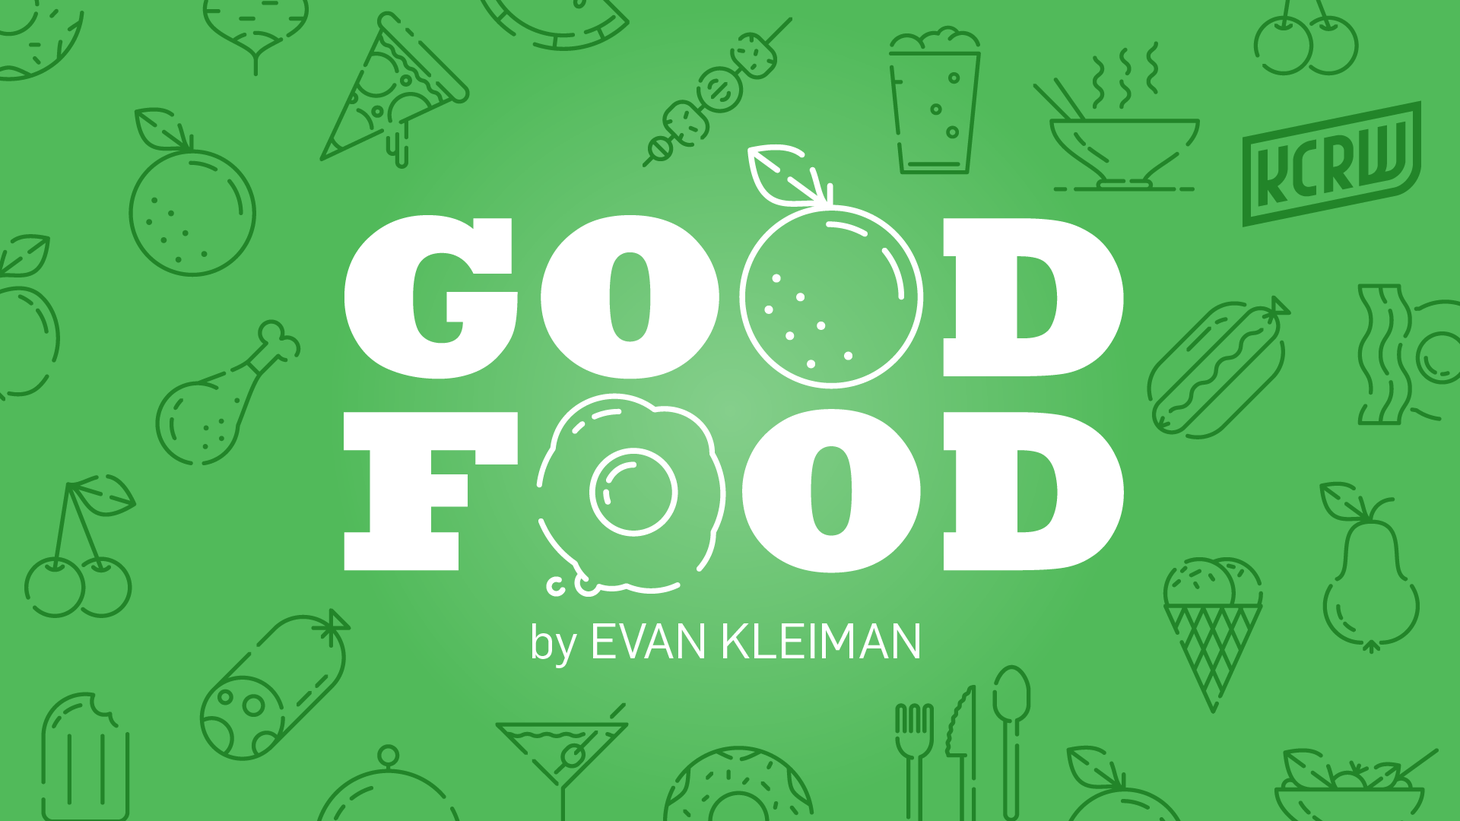 Hear about the best in Korean food in LA from Jonathan Gold, a man who eats 6 Korean meals a day. Then, goat cheese shouldn't taste like a goat. Find out the best flavors from Ari Weinsweig from Zingerman's Deli in Ann Arbor, Michigan.